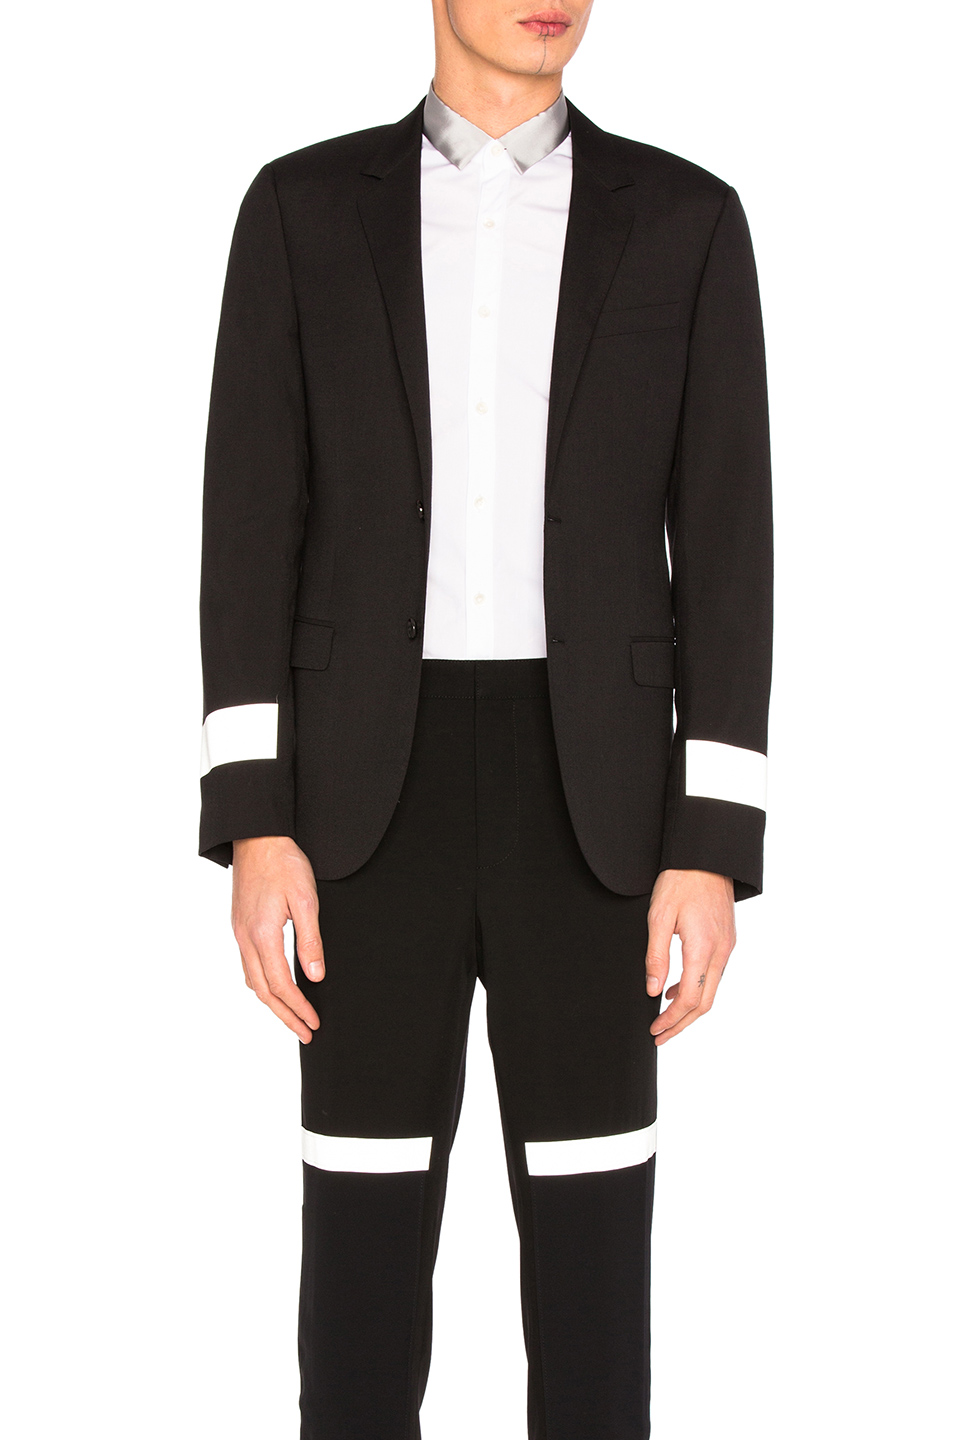 Lanvin Reflective Sleeve Blazer in Black